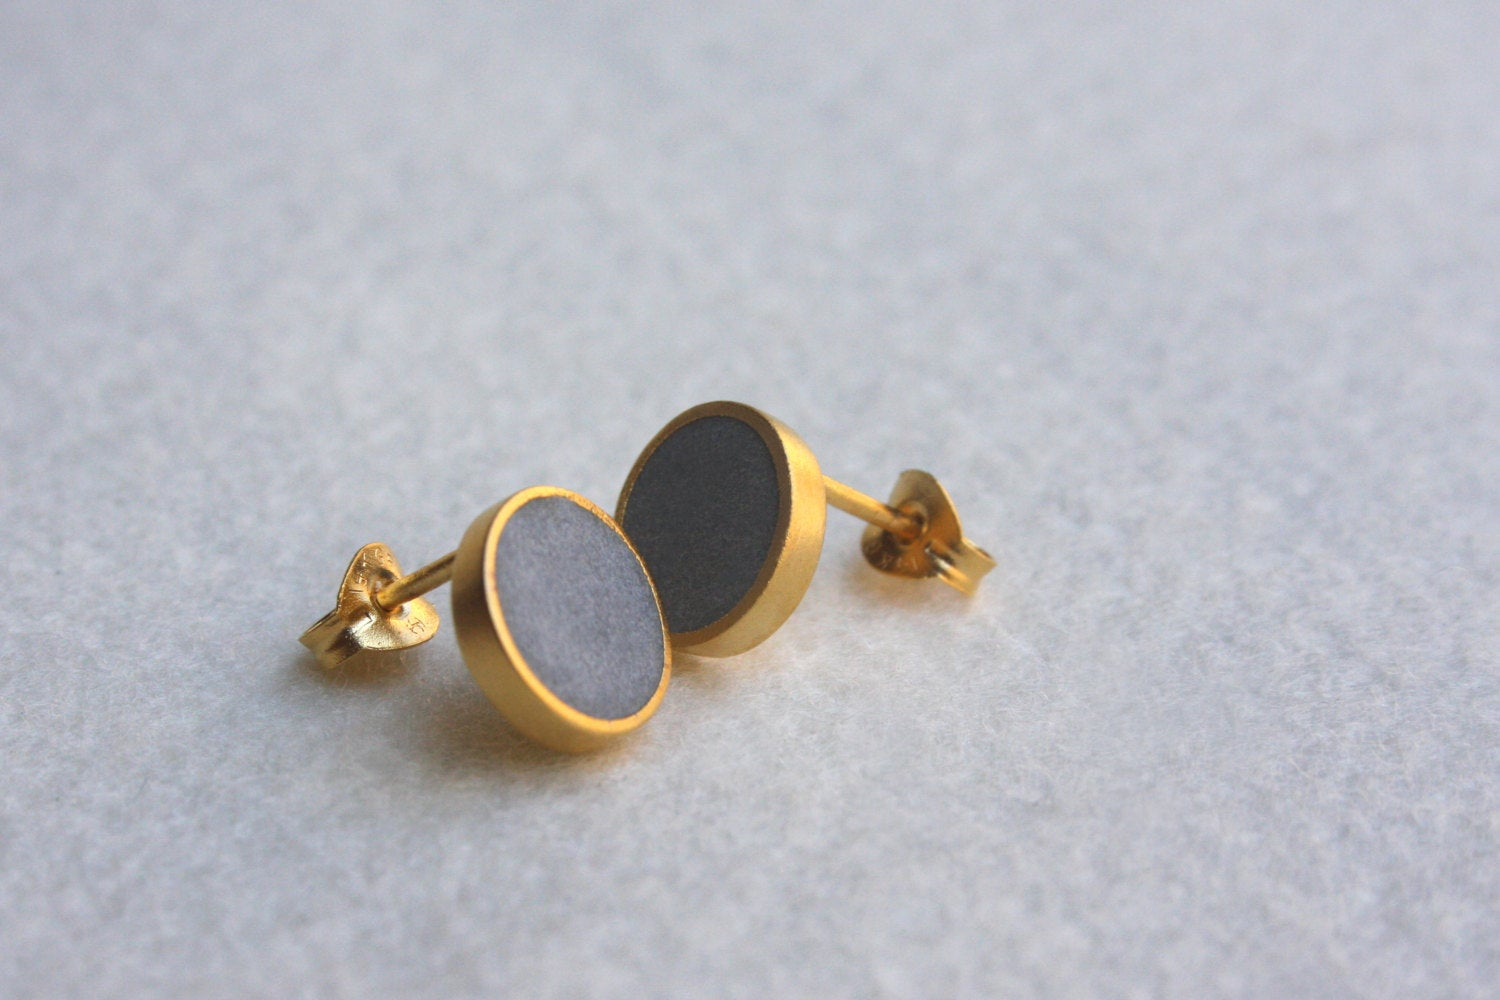 Classic round stud earrings - hs